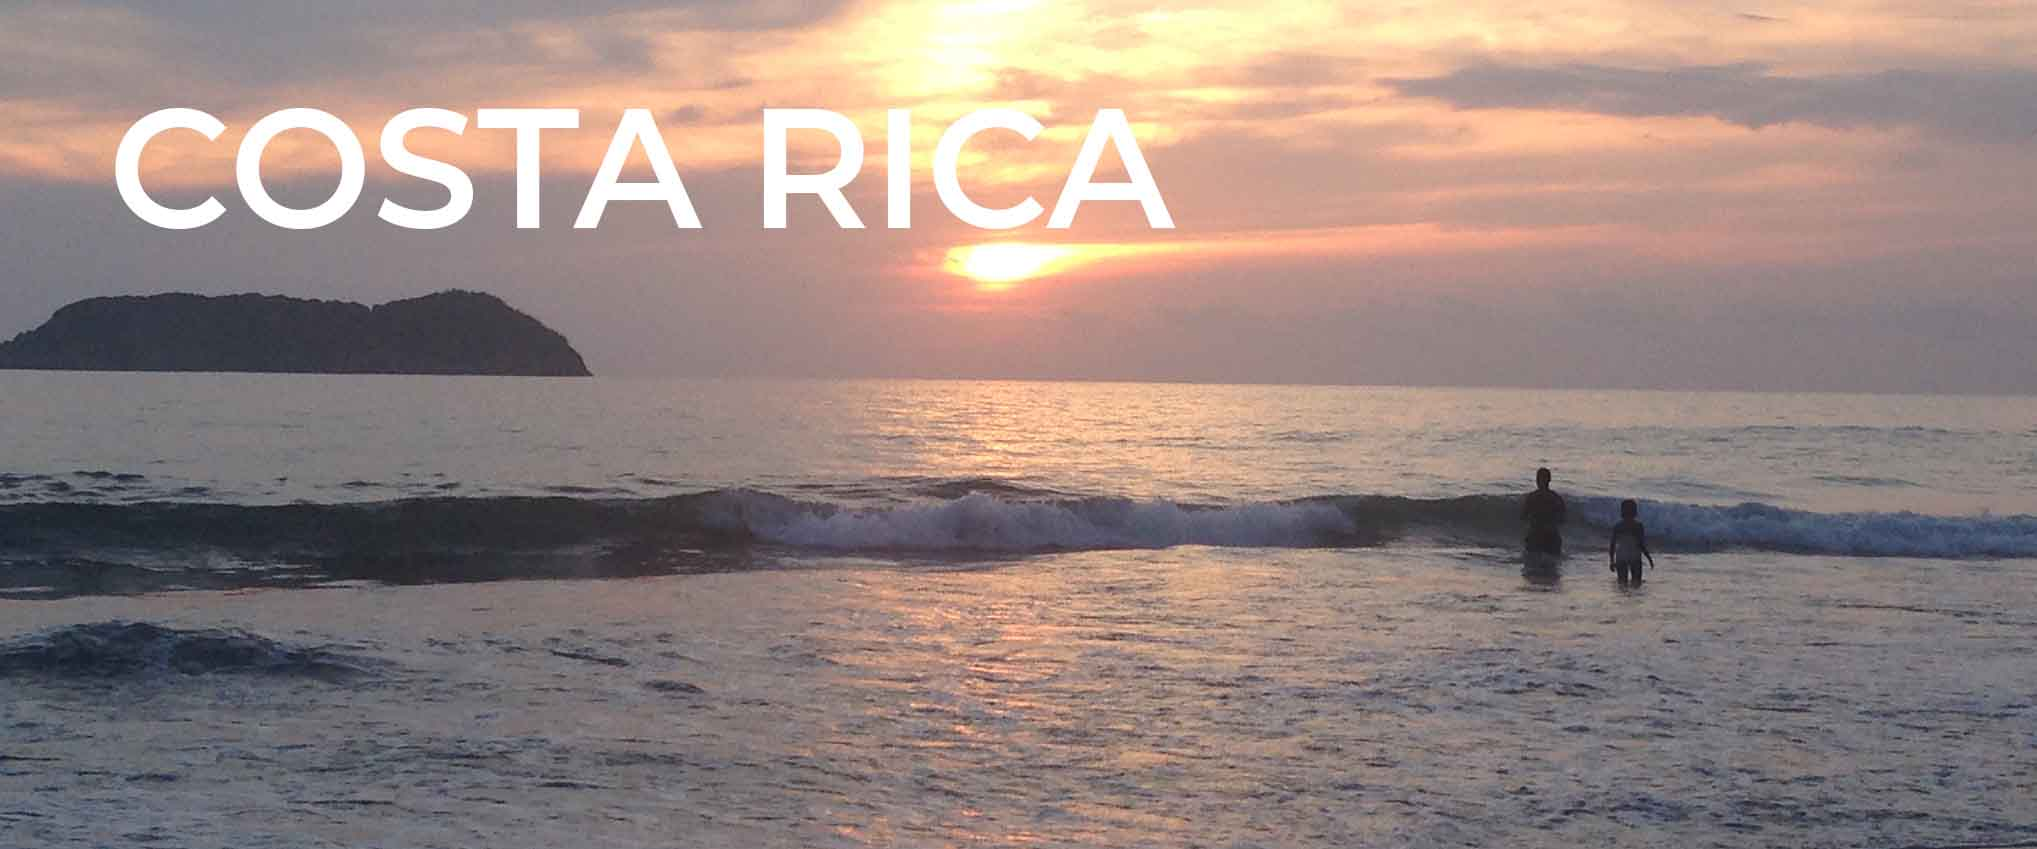 Costa Rica-page-banner